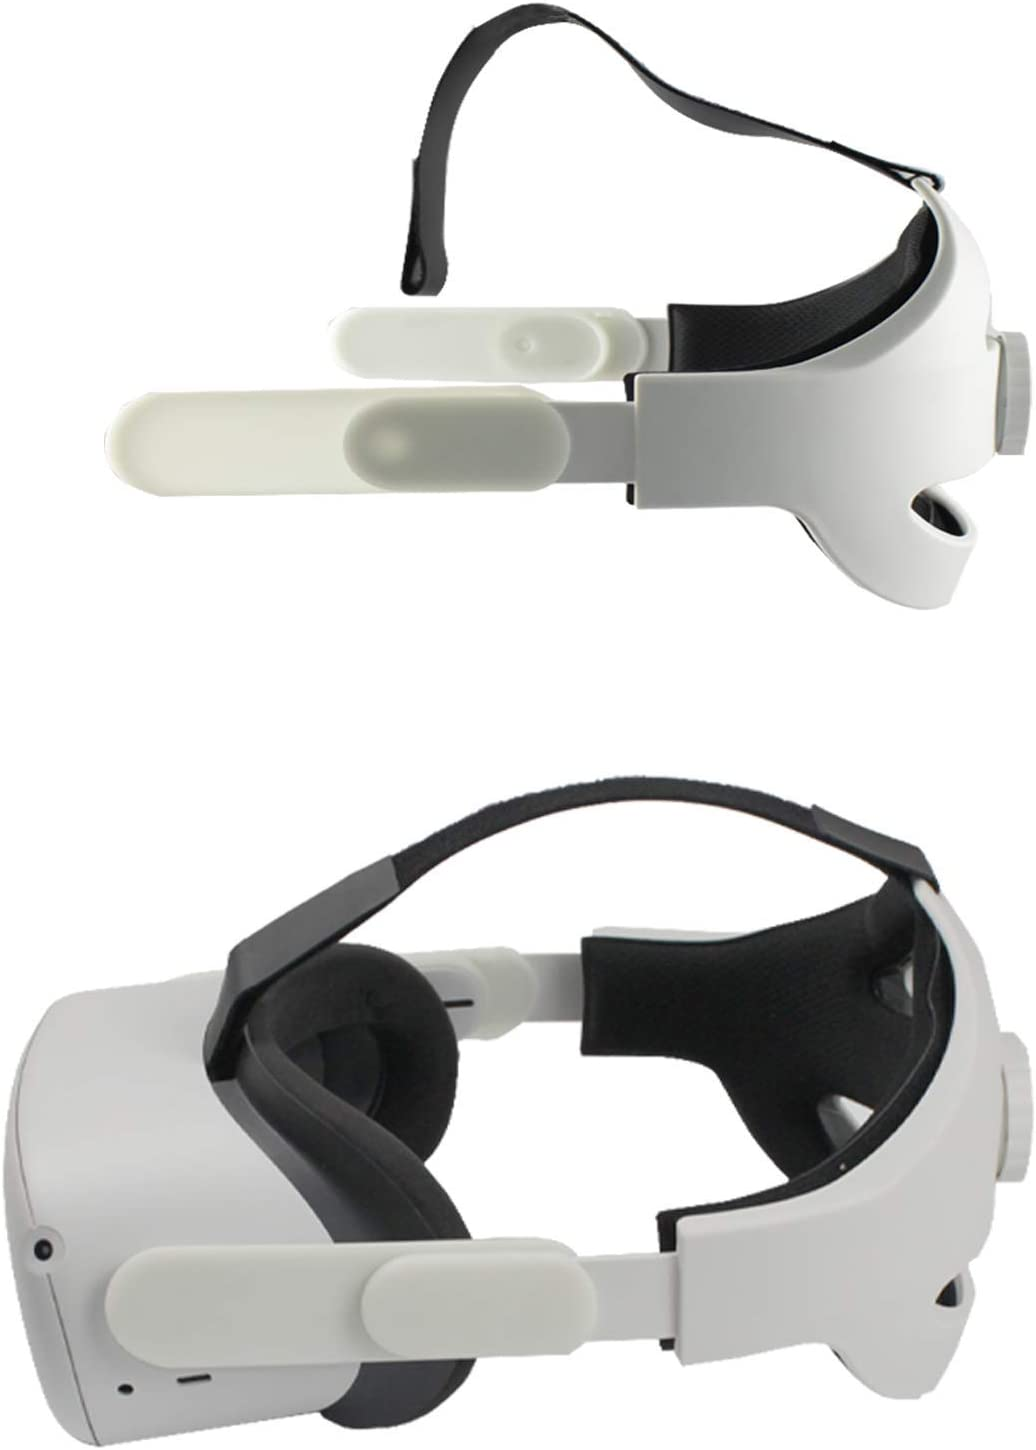 Eyglo Replace K3 Adjustable Elite Strap for Oculus Quest 2 Head Strap Pad Enhanced Support and Comfort Small K3 Lightweight Storage